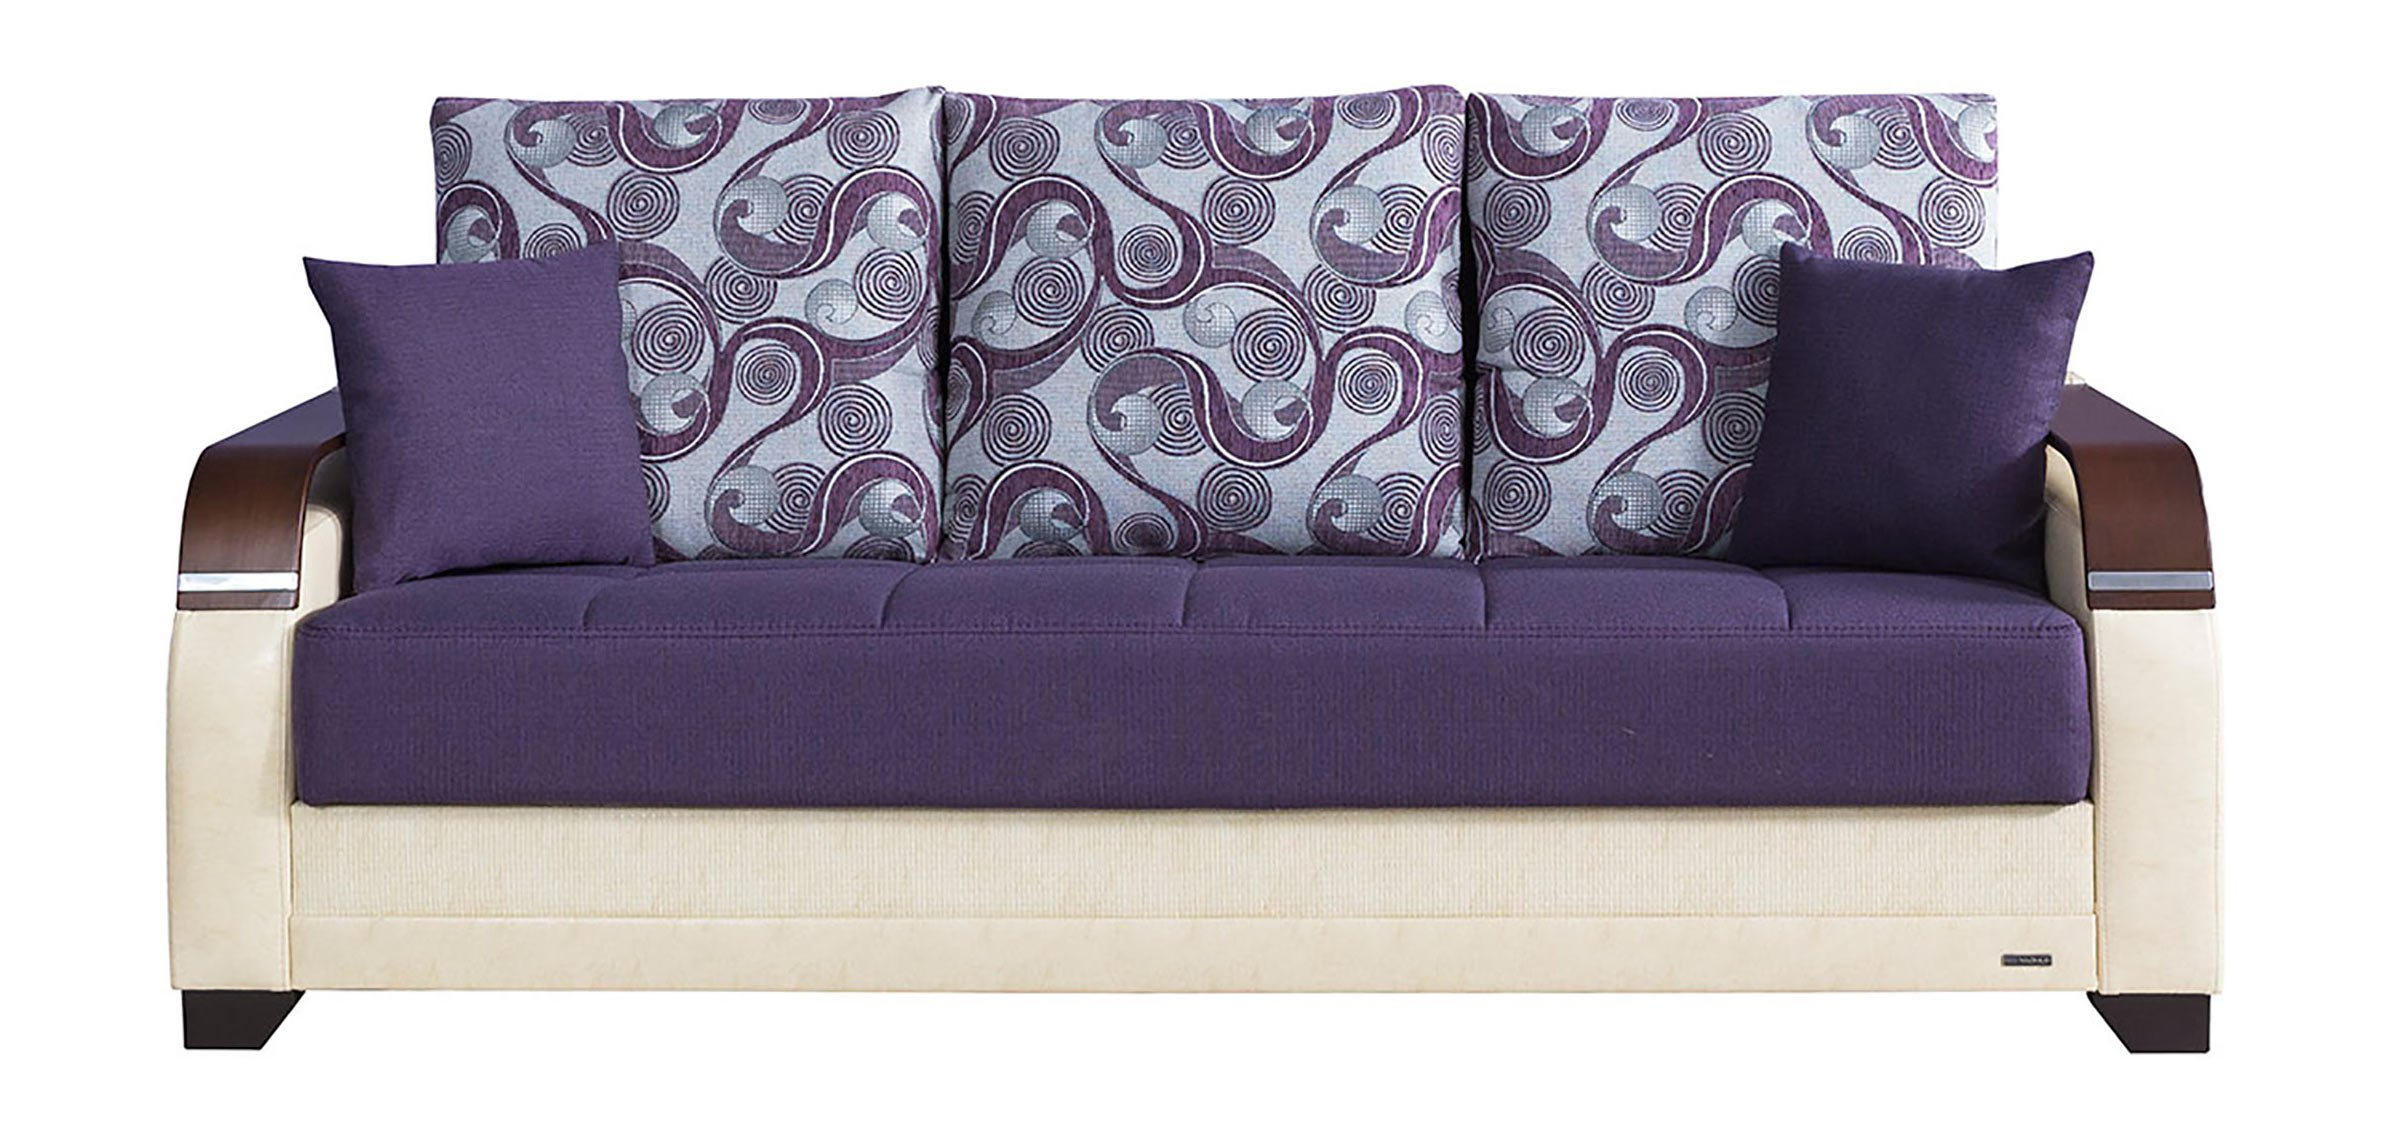 Plum Sectional Sofa | Eggplant Sectional Sofa | Purple Sofa